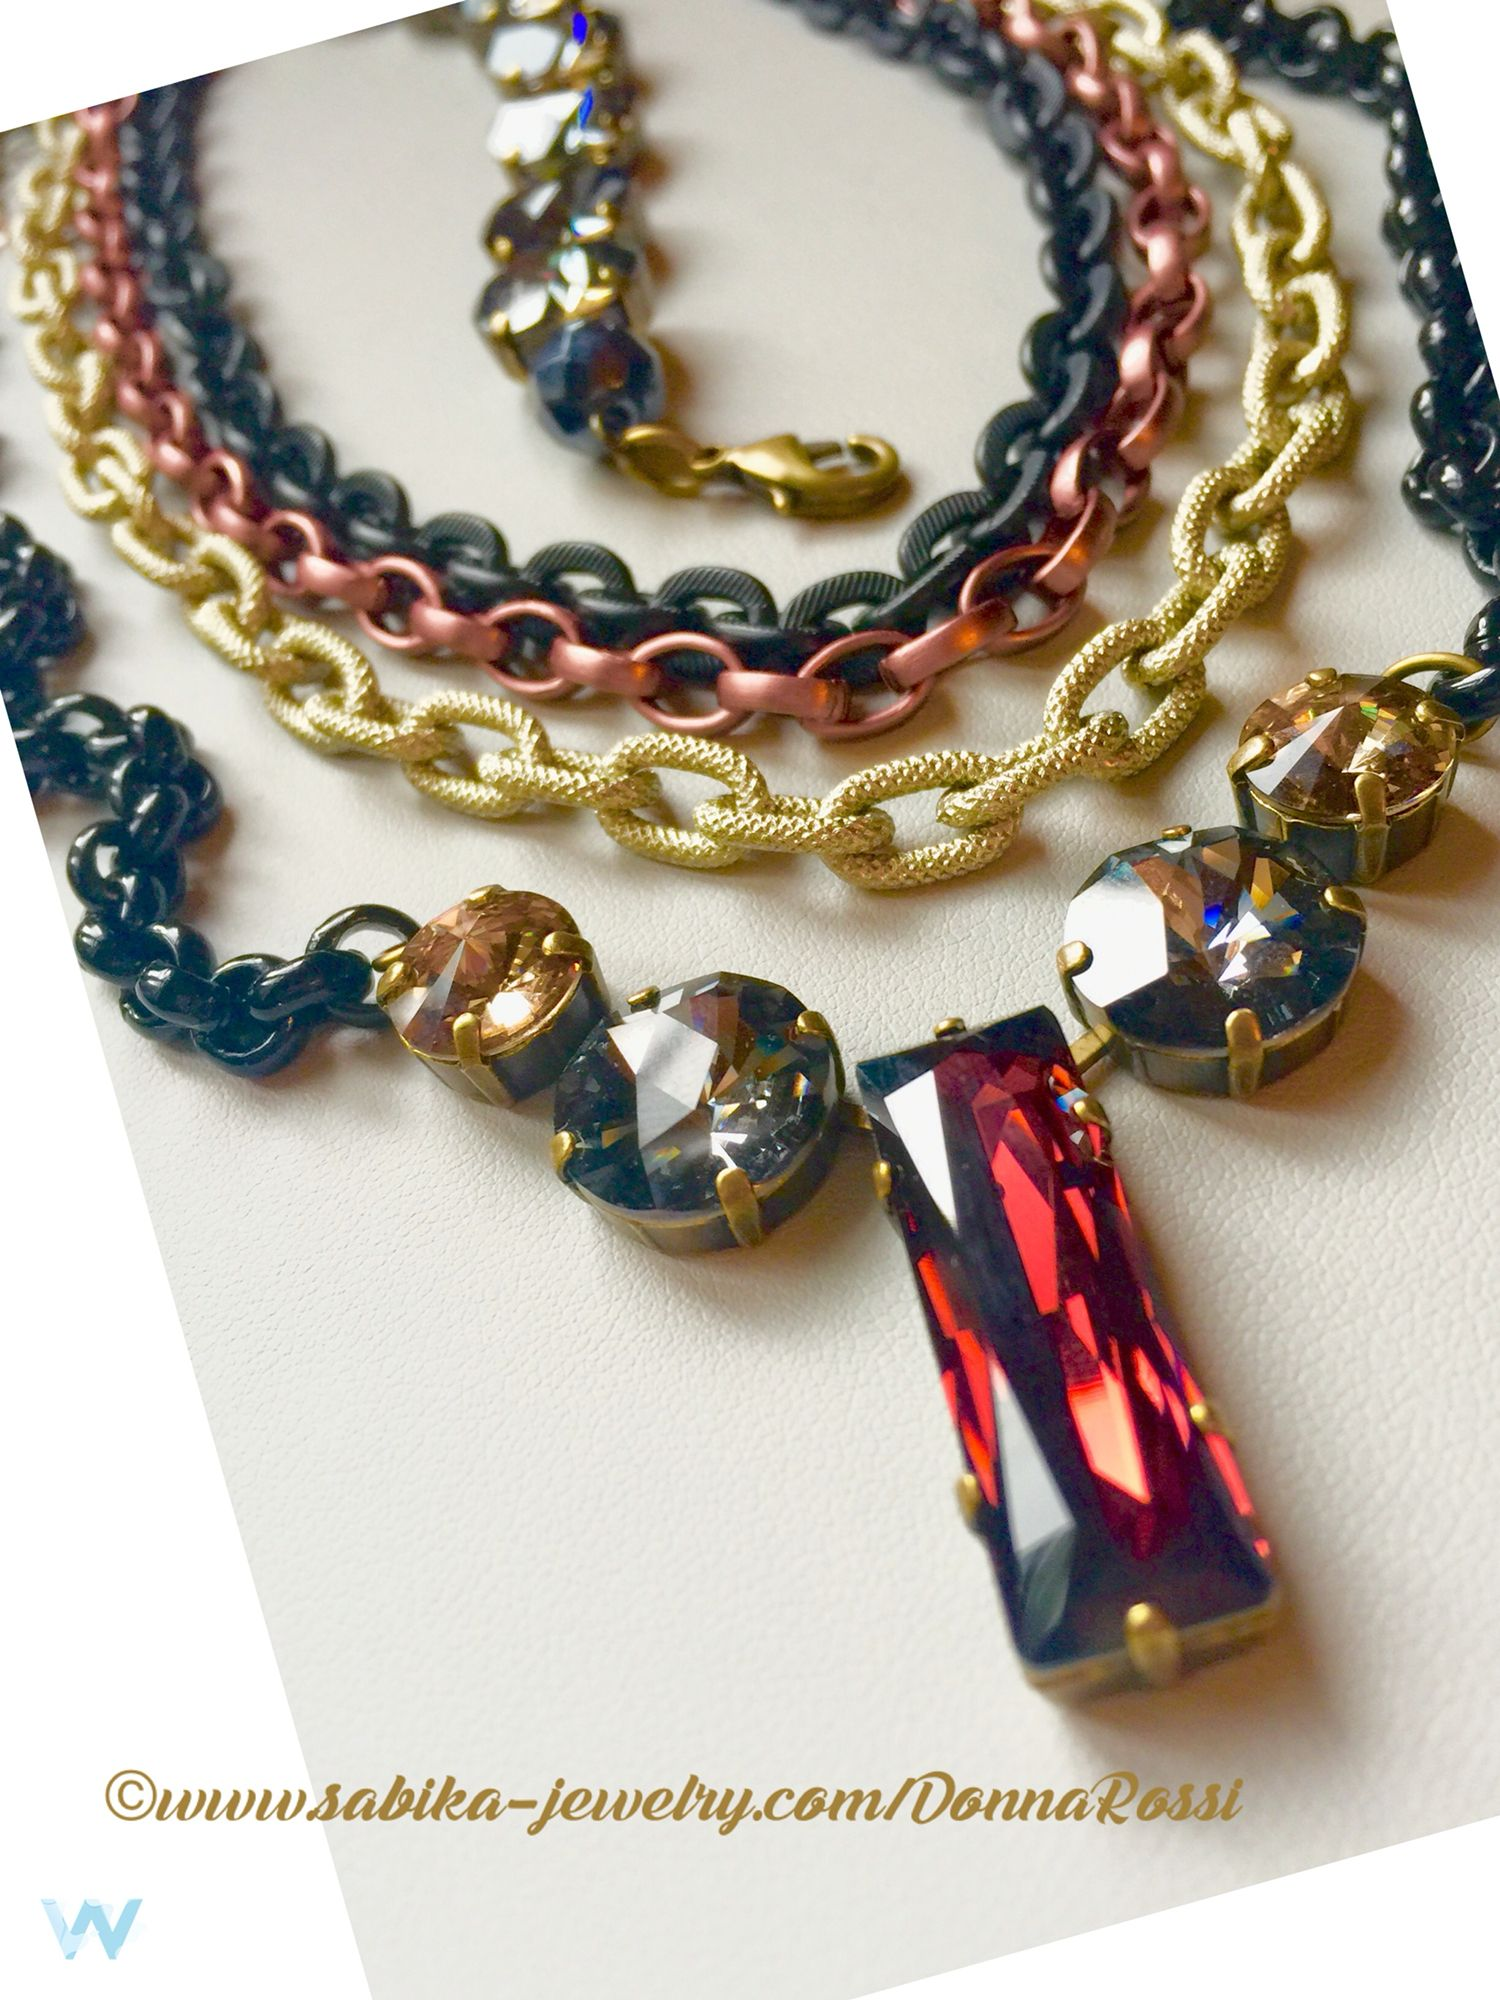 Sabika Look Necklace - Authentic sabika first time customers receive special additional discount from me order to receive